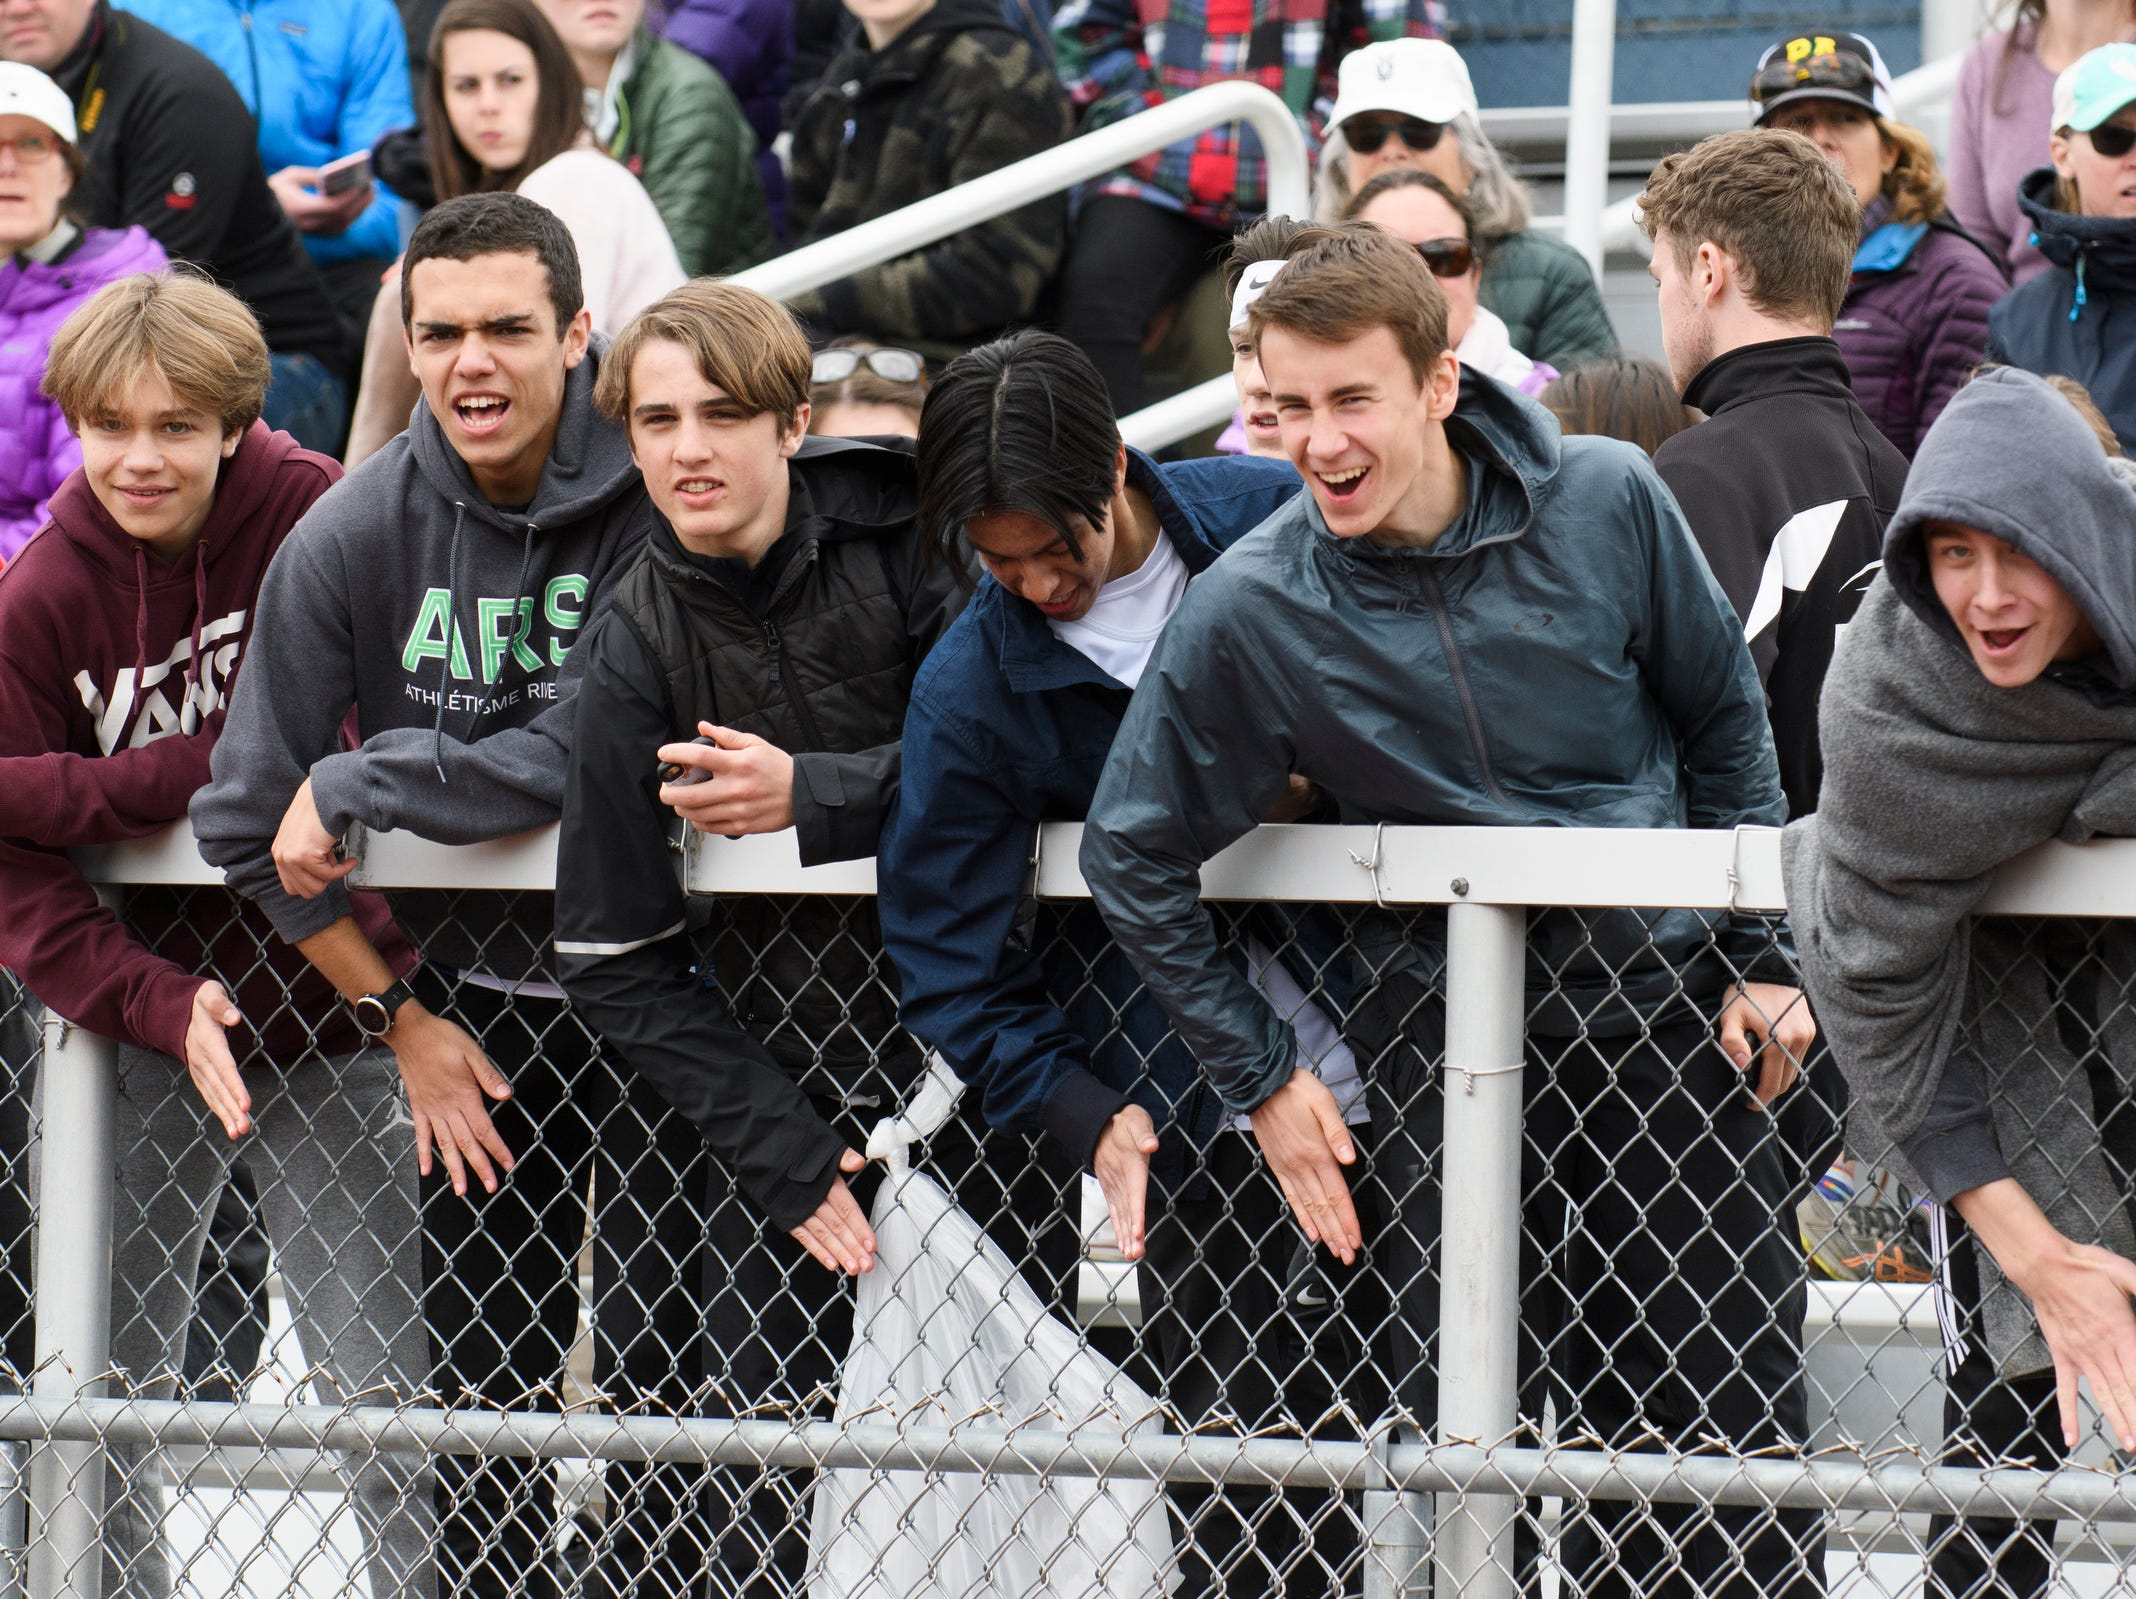 Fans cheer for the boys 1500m race during the Burlington Invitational high school track and field meet at Buck Hard Field on Saturday May 11, 2019 in Burlington, Vermont.